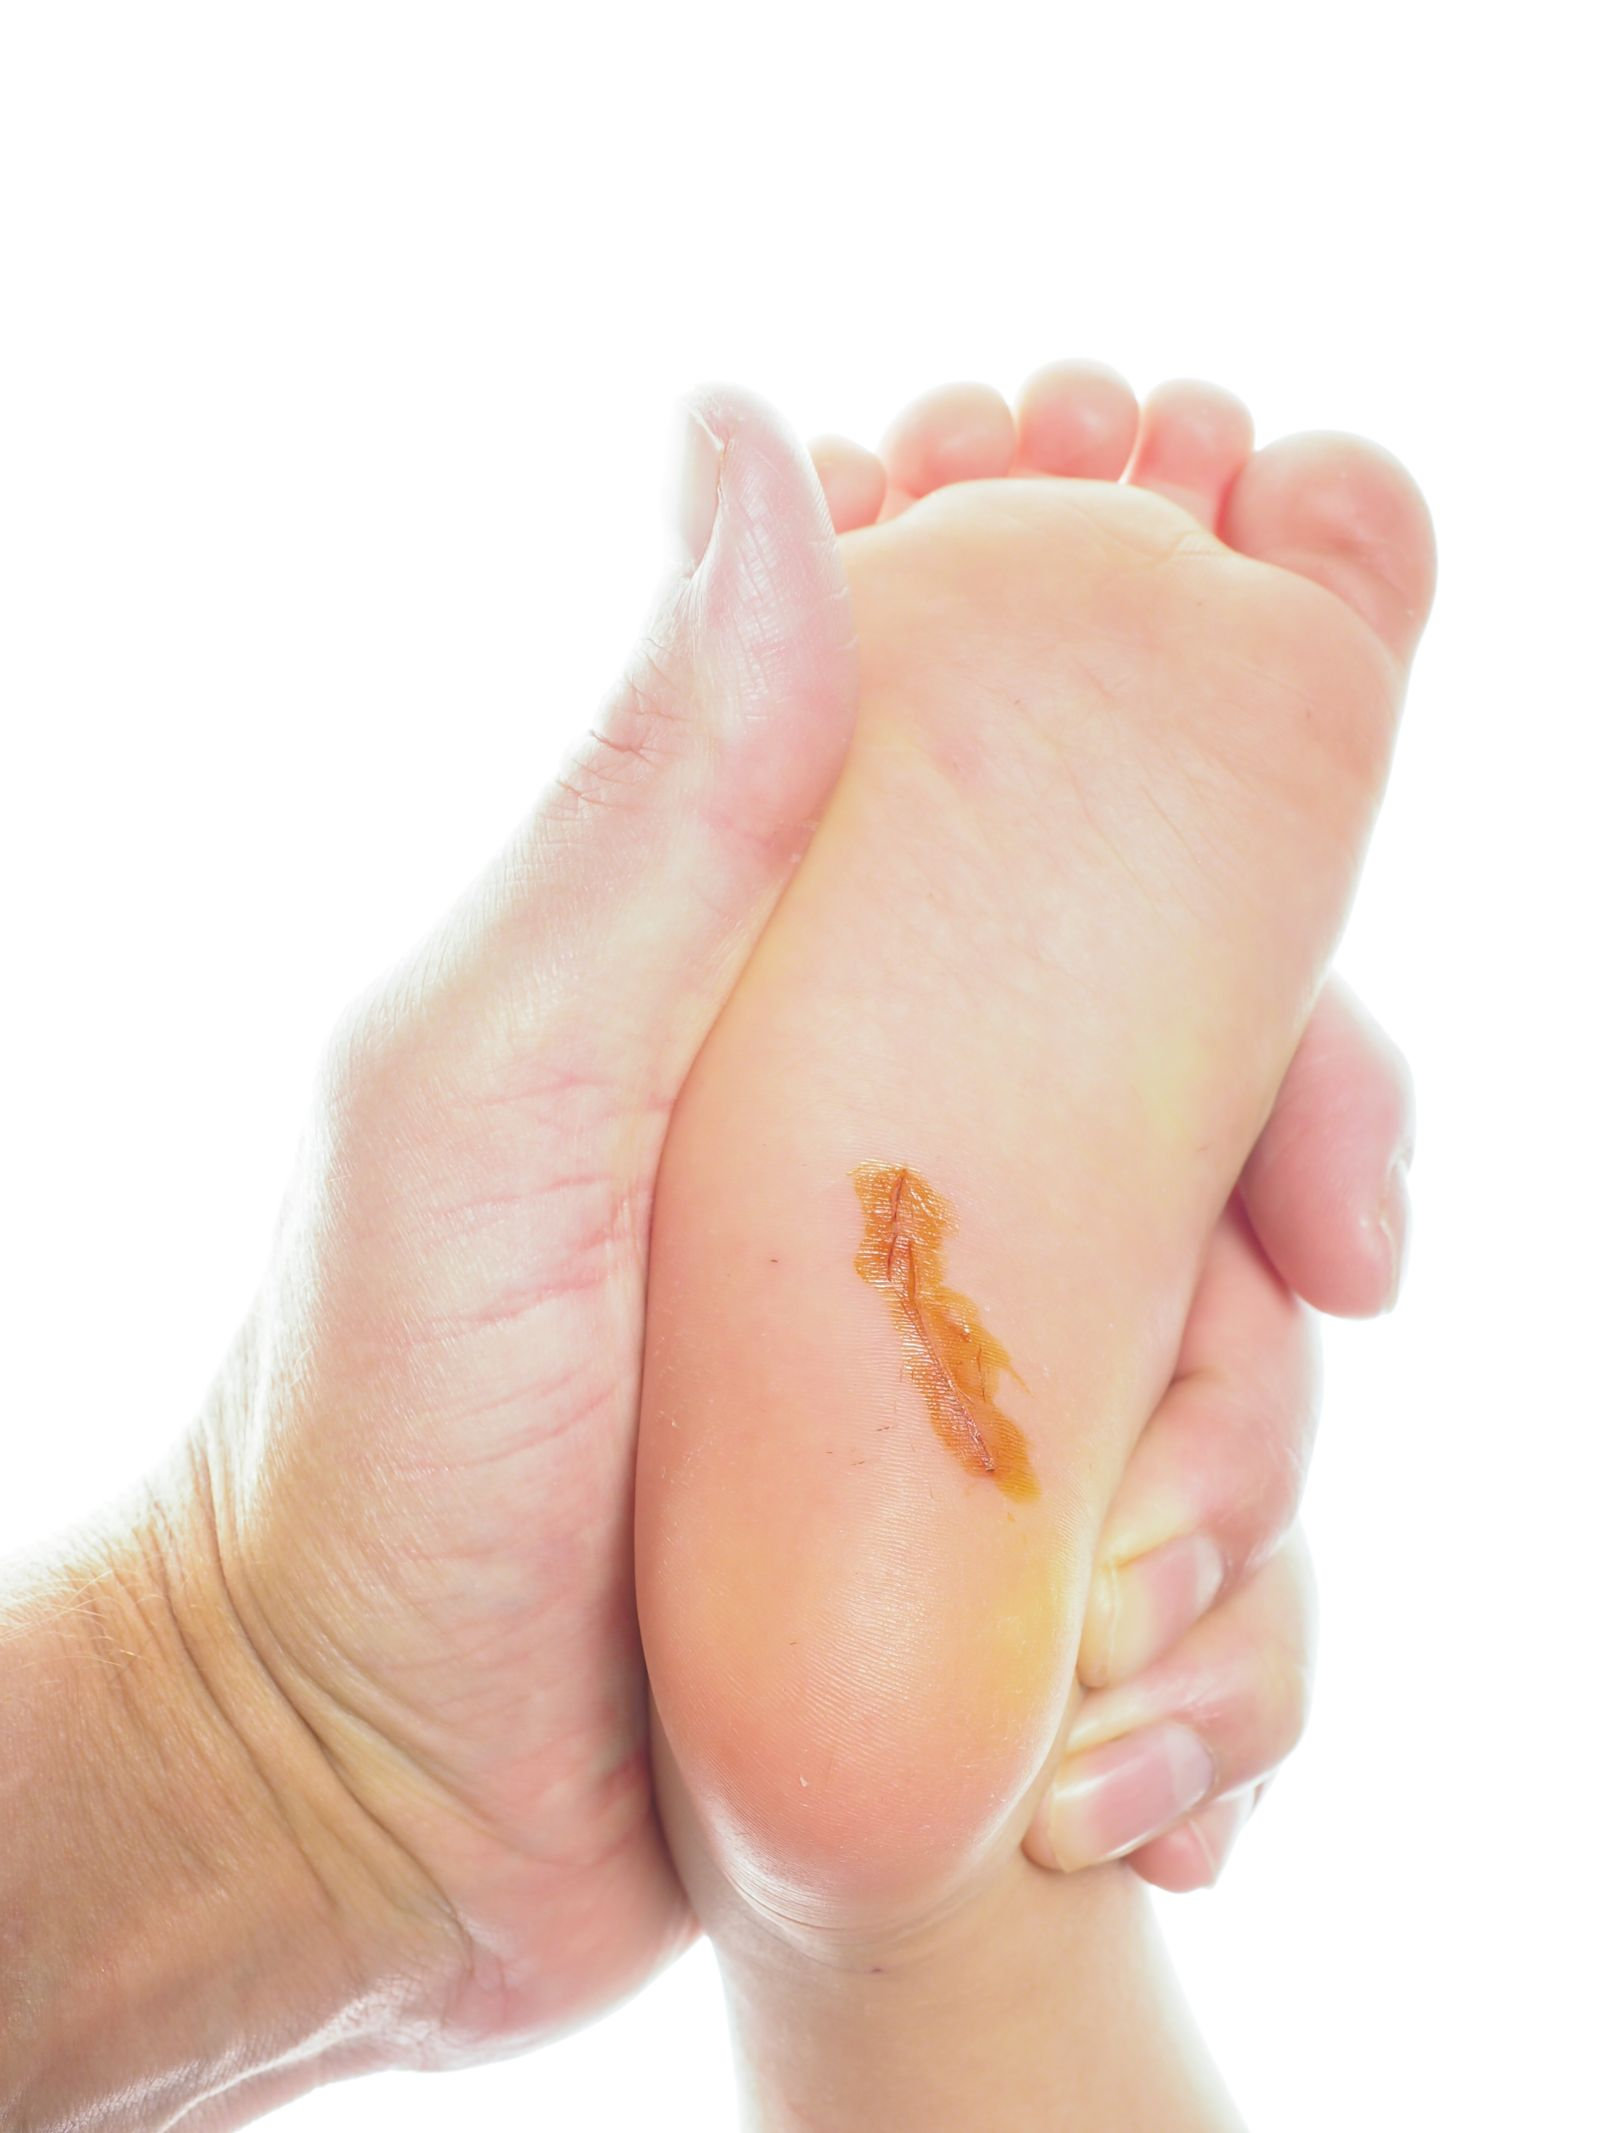 Diabetic Wound Care Medford Oregon | Southern Oregon Foot & Ankle, LLC